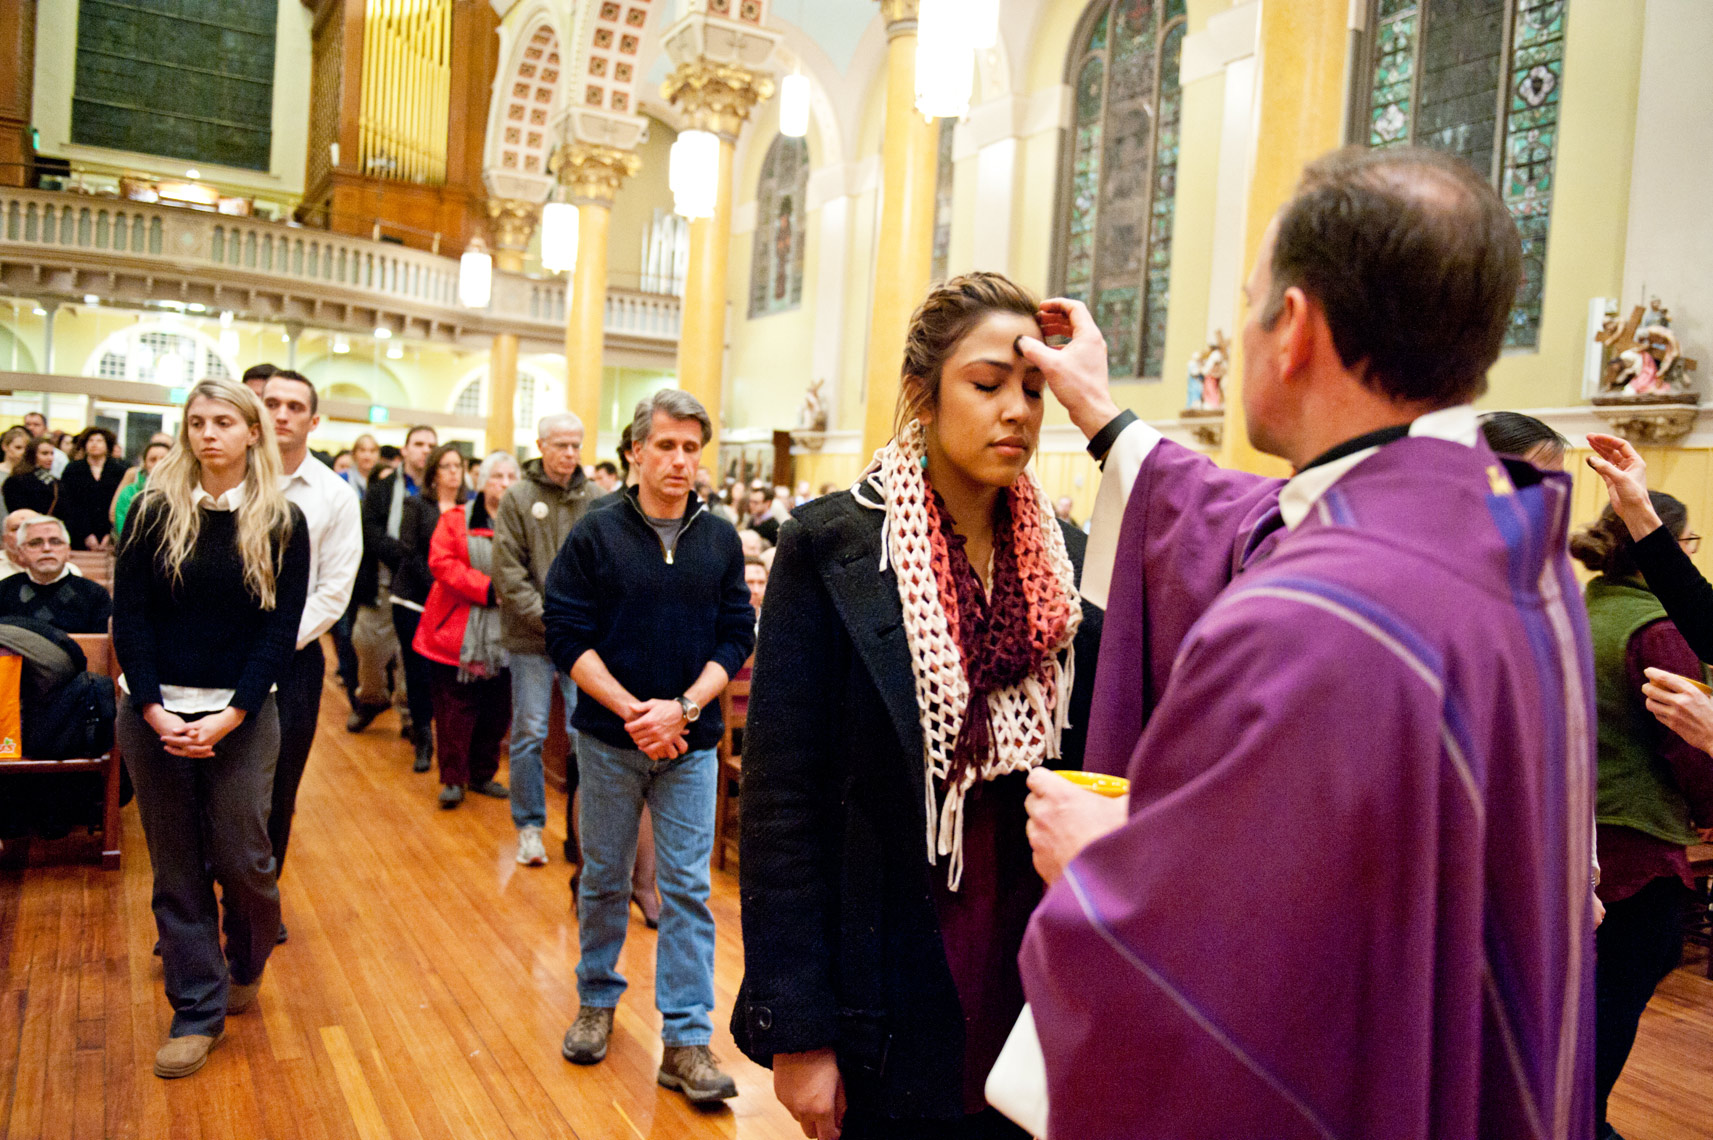 the Reverend John Unni placing repentance ashes on foreheads of parishioners St. Cecilia Parish Ash Wednesday